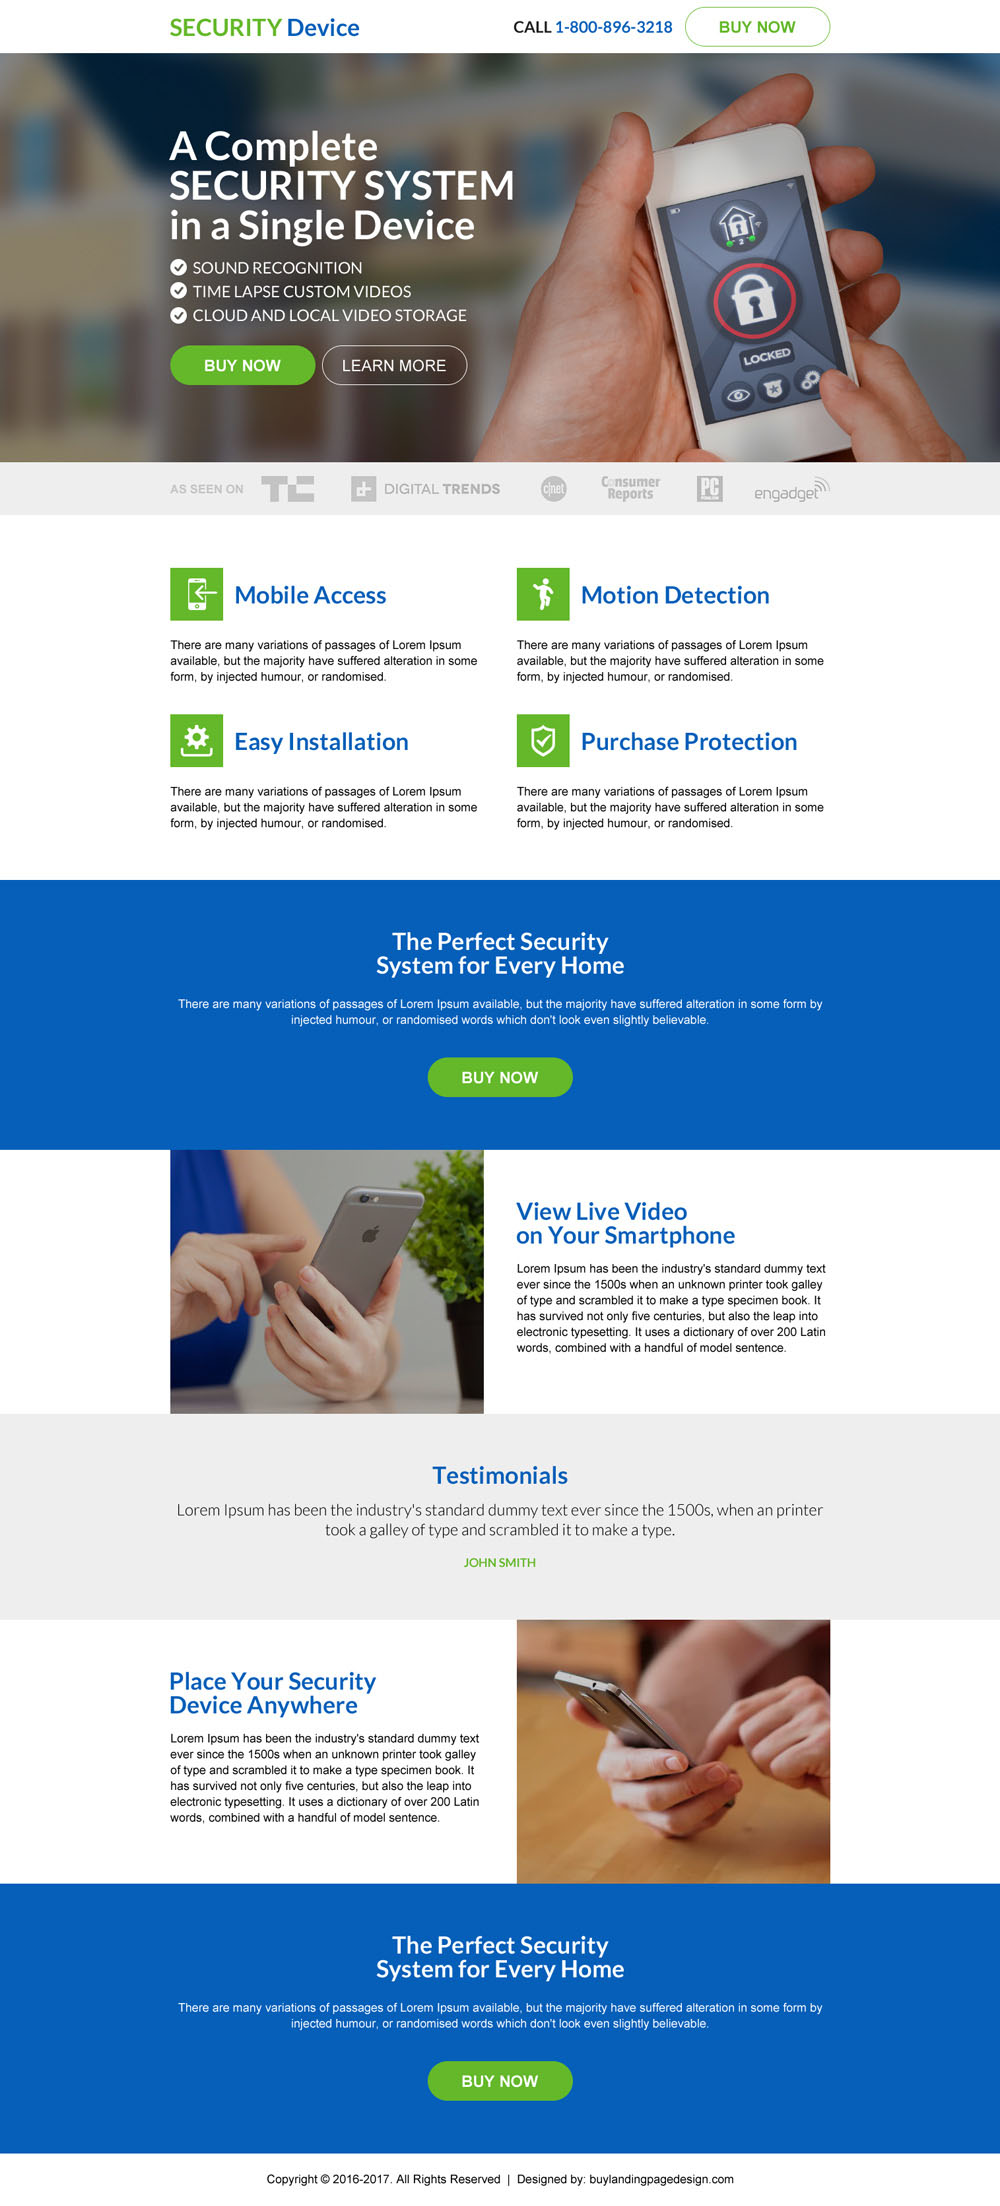 How To Setup And Run Call To Action Landing Page Design BUYLPDESIGN Blog